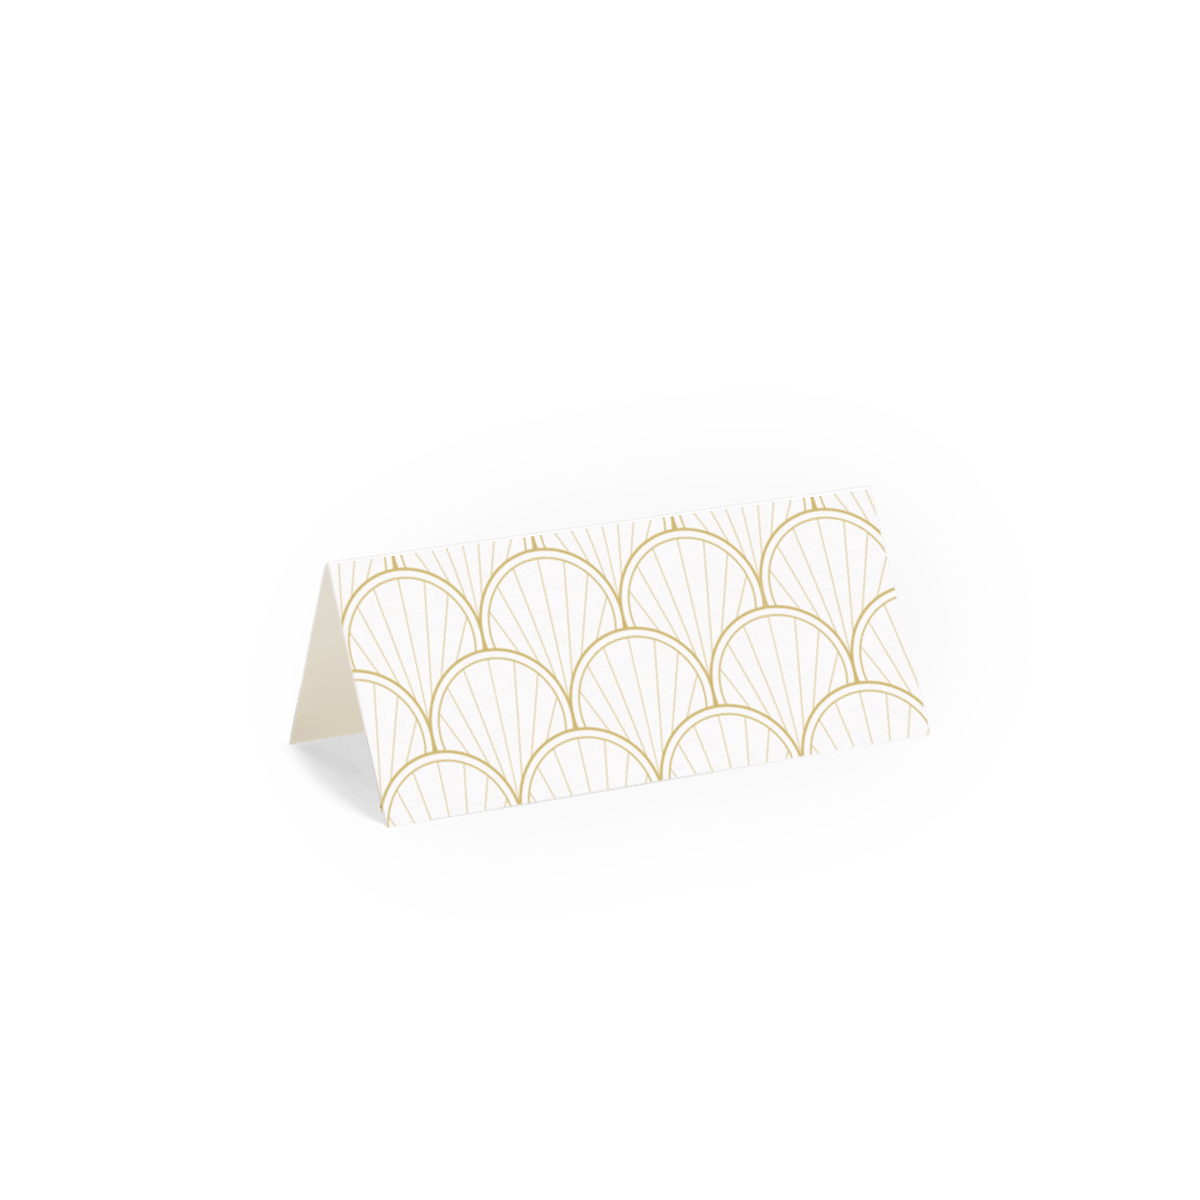 Https%3a%2f%2fwww.papier.com%2fproduct image%2f81890%2f15%2fgold scallop 19742 back 1561999526.png?ixlib=rb 1.1